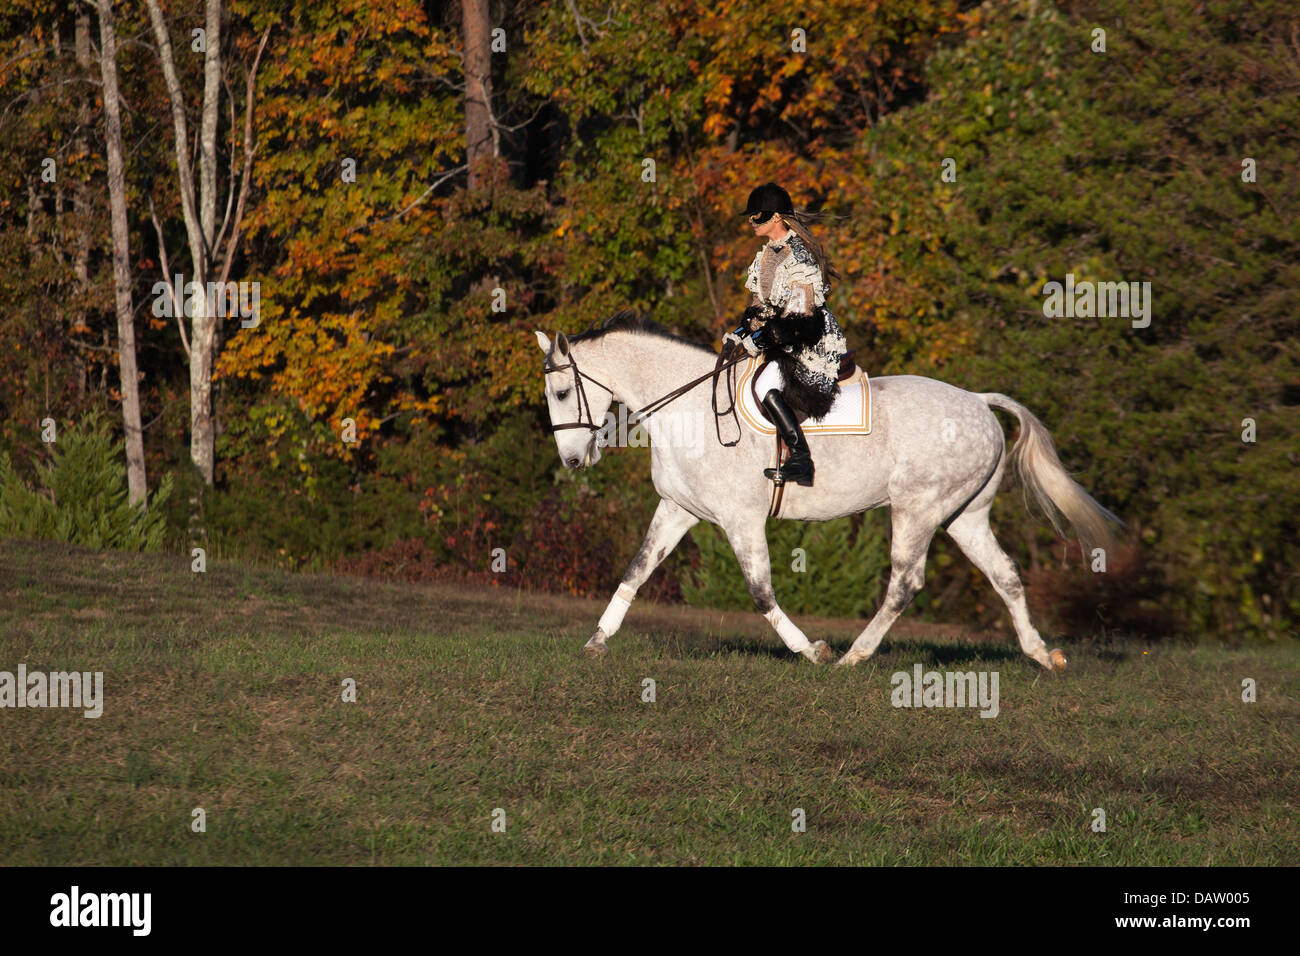 Masked woman in Halloween costume riding gray horse in countryside - Stock Image